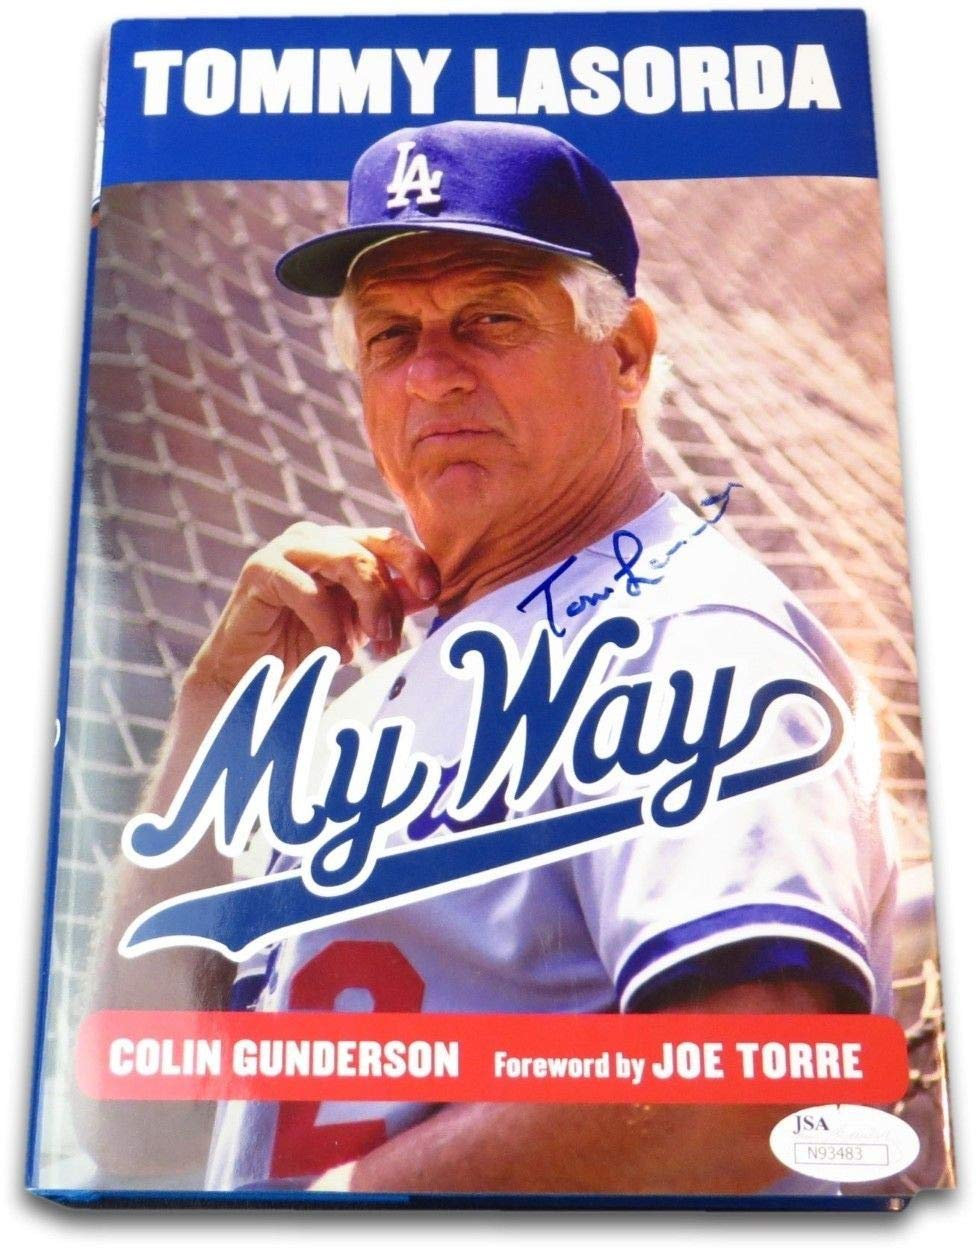 Tommy Lasorda Autographed Signed Book My Way Los Angeles Dodgers JSA Authentic N93483